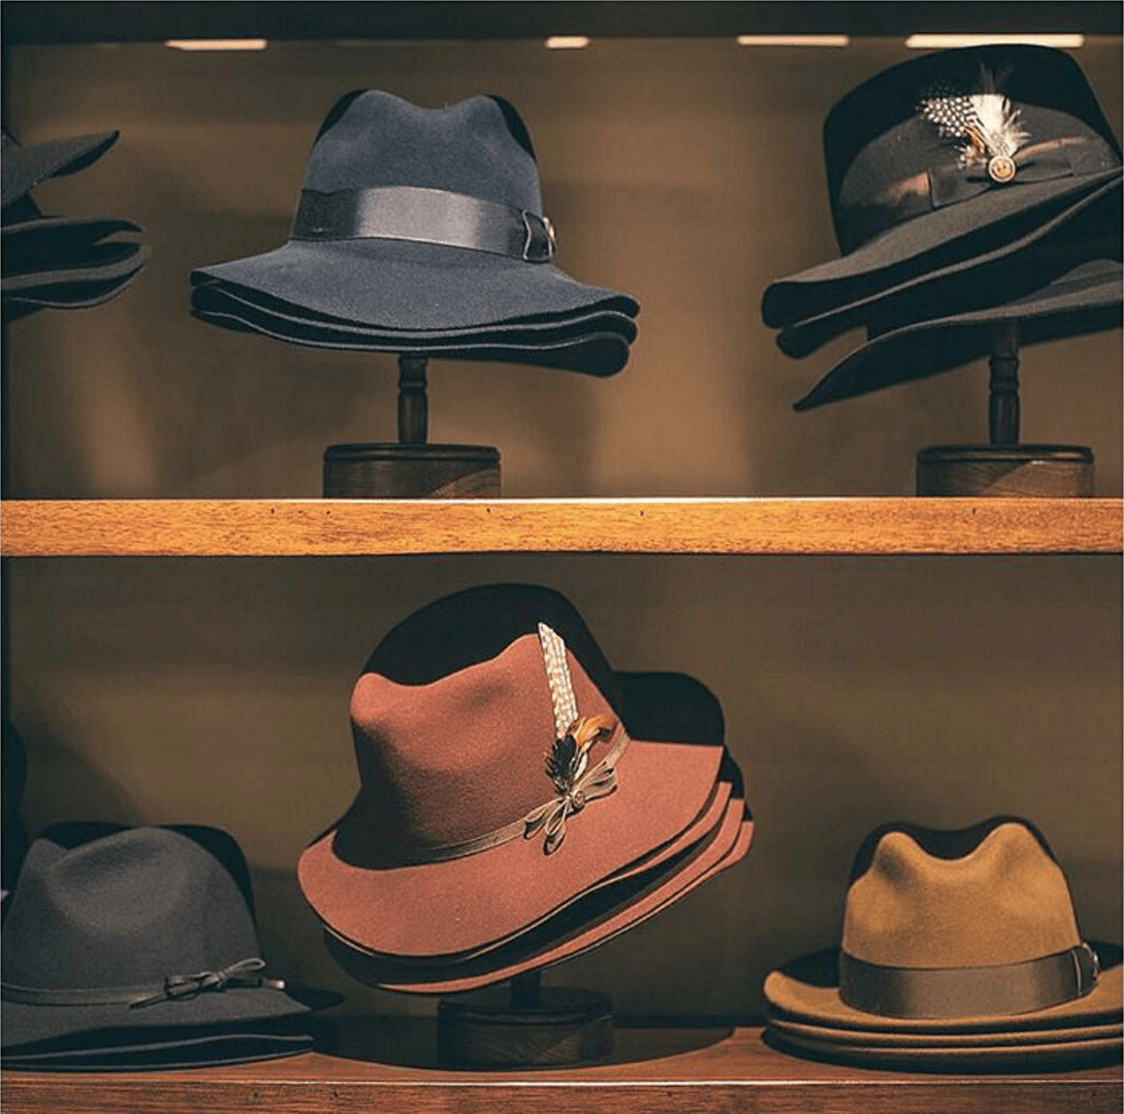 Shop Ladies and Gents Goorin Bros Hats in Store